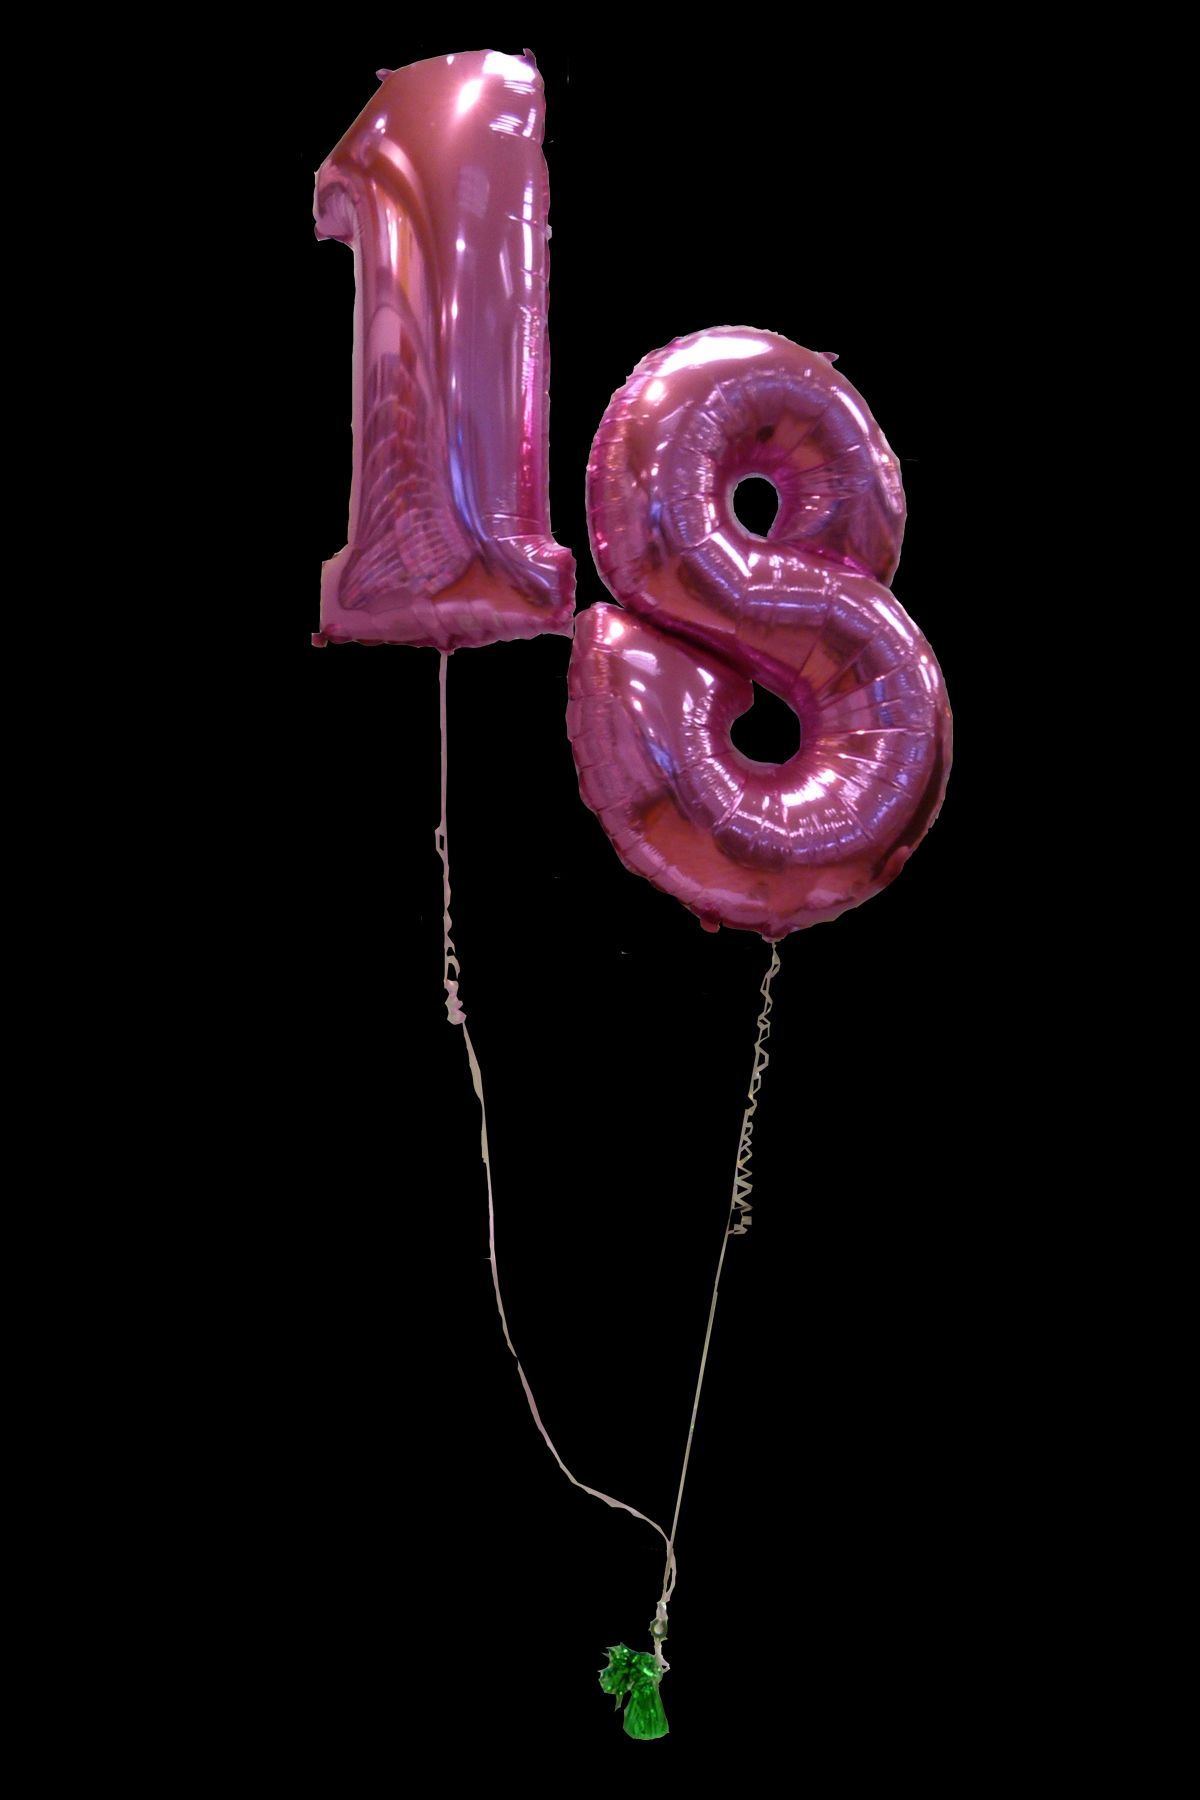 Pink Number 18 Balloons Perfect For Decorating At An 18th